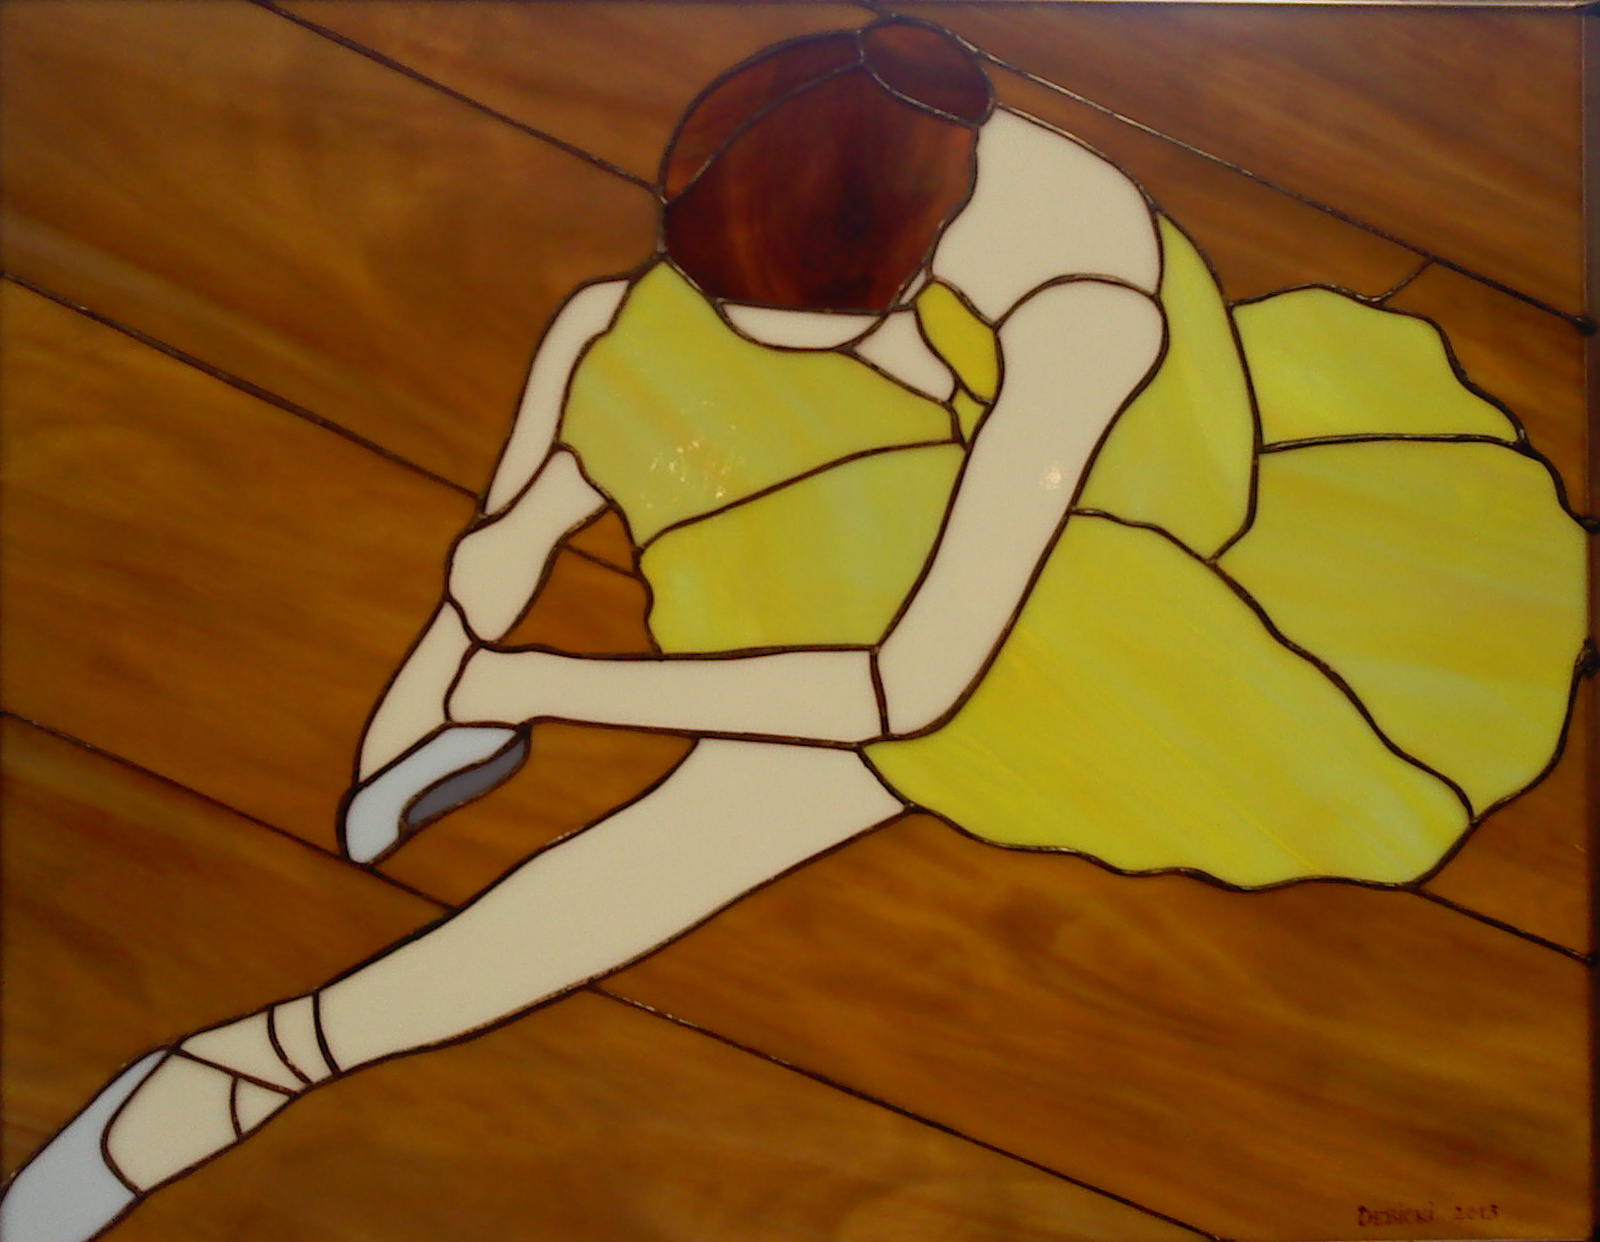 Ballerina Stained Glass Patterns